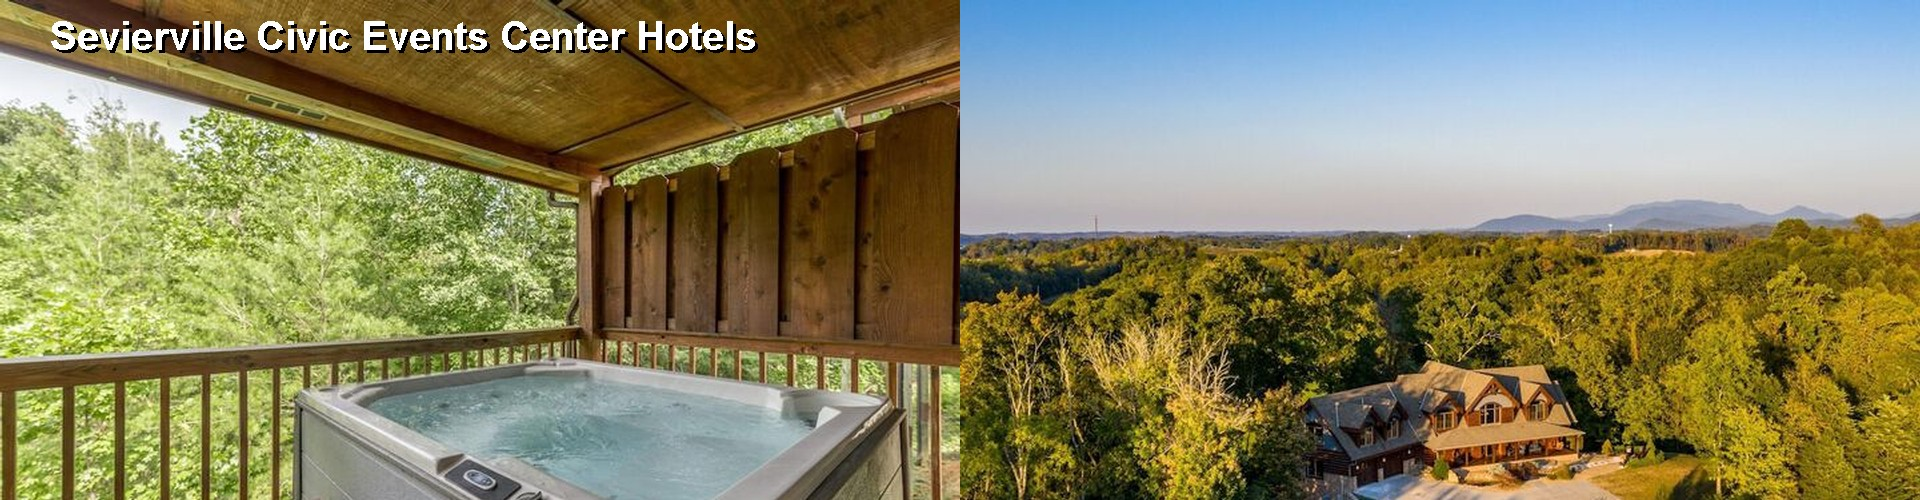 40  Hotels Near Sevierville Civic Events Center  Tn